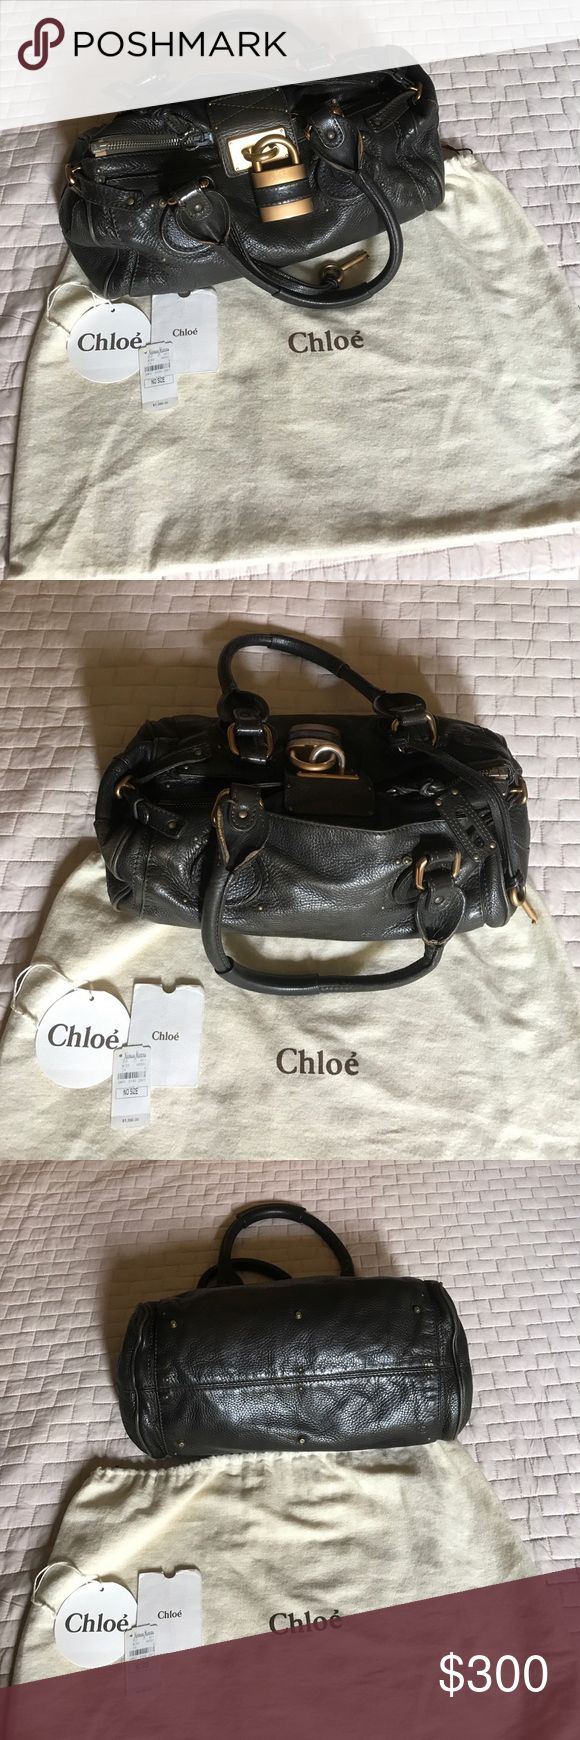 Authentic Chloe Paddington Bag Kaki color Authentic Chloe Paddington Bag - Kaki color- Inside has some stains . Comes with dust bag and has tags not attached! Chloe Bags Shoulder Bags